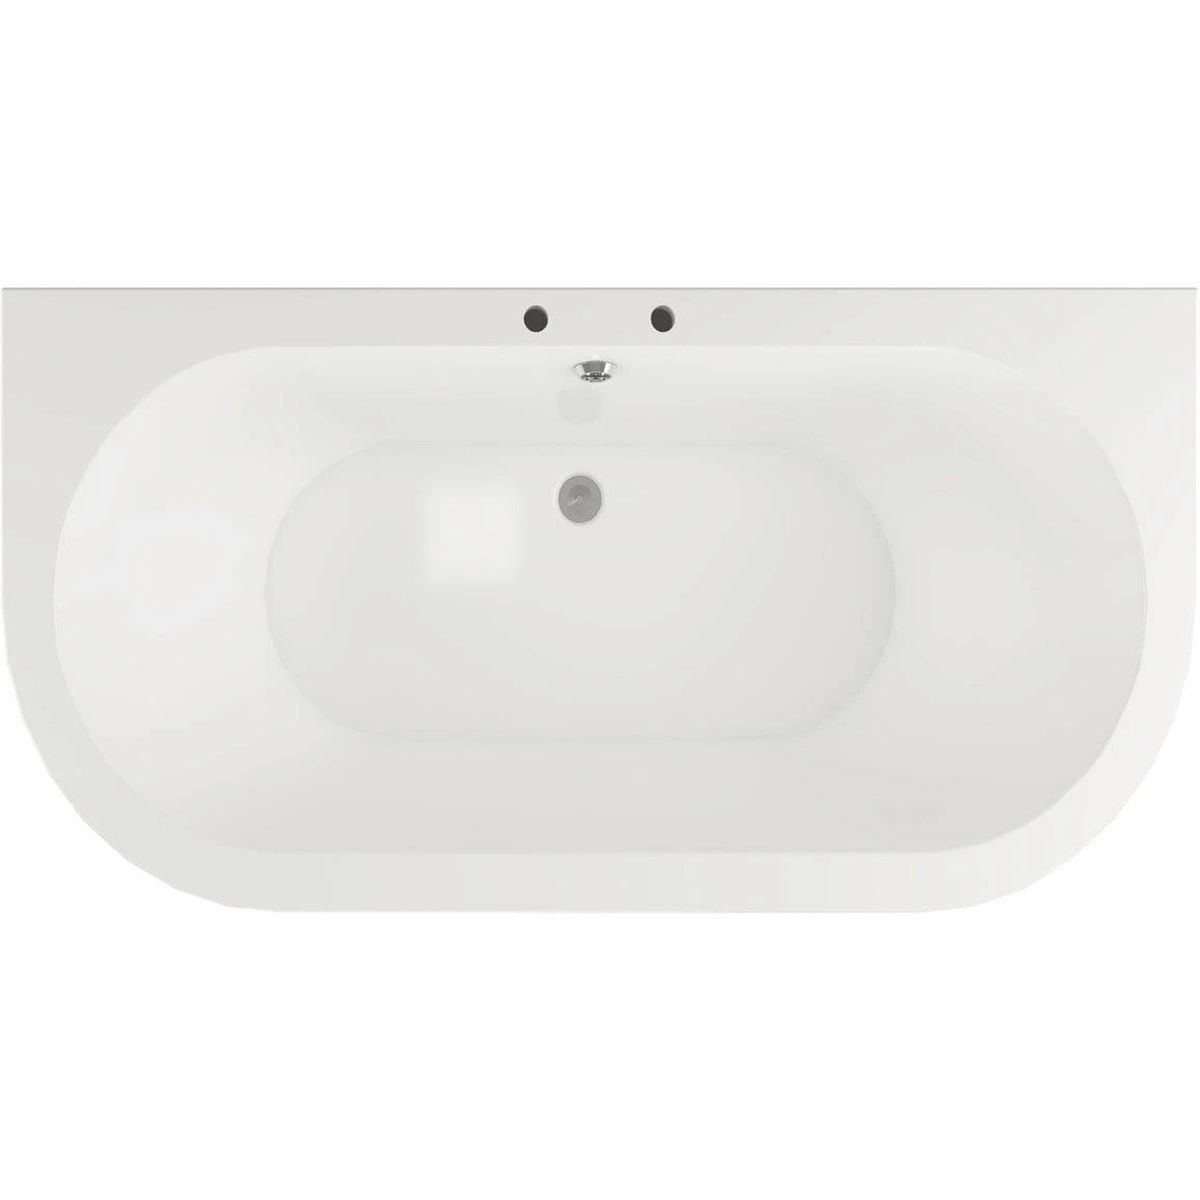 Bathrooms To Love Traditional Back To Wall Bath with Feet 1700mm x 800mm 1